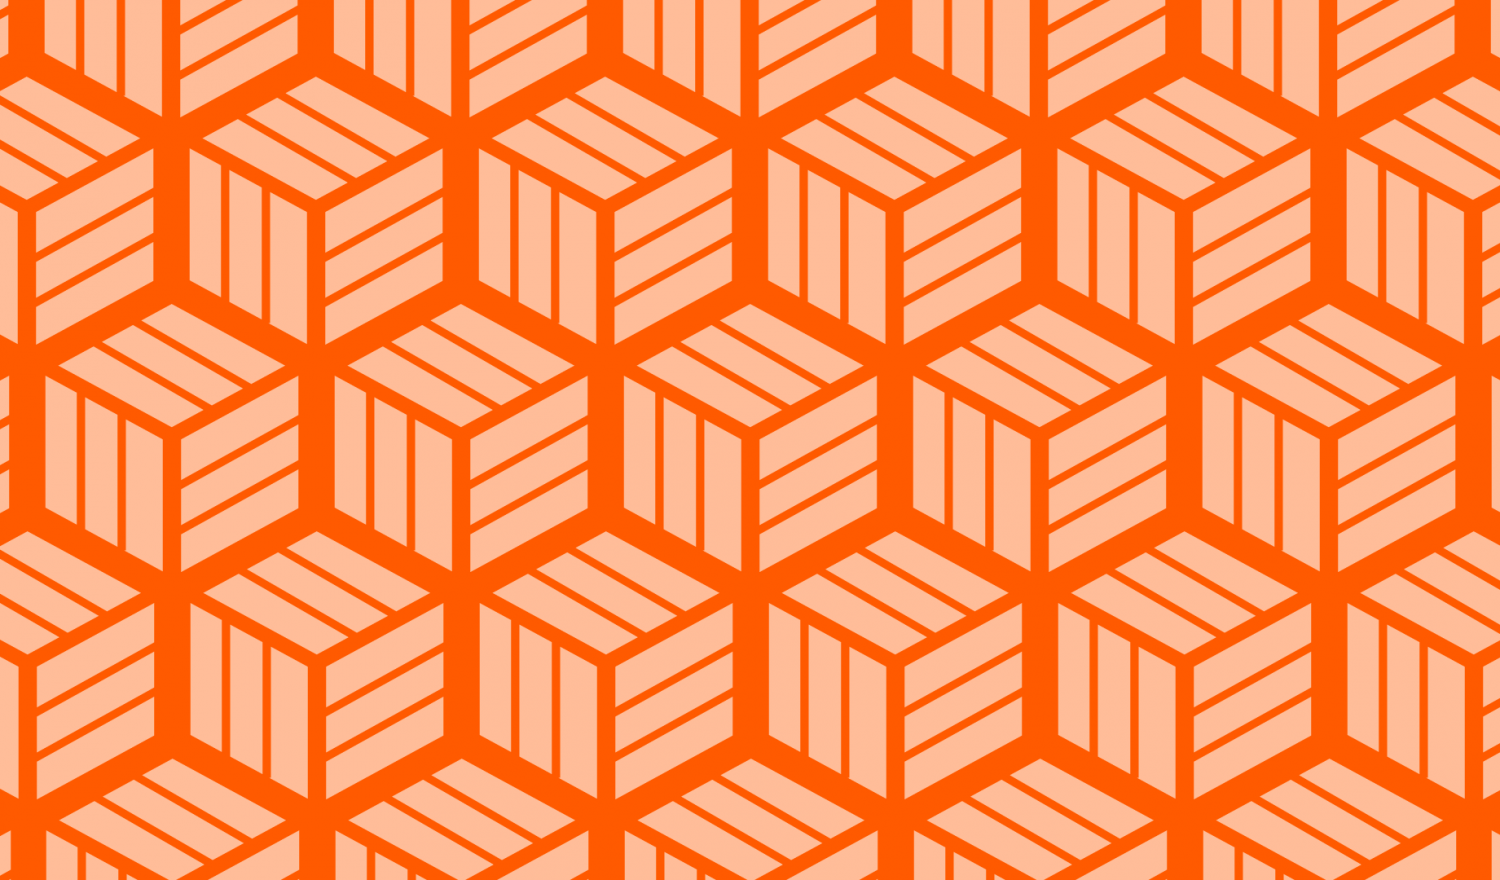 A pattern made up of the turnilo logo